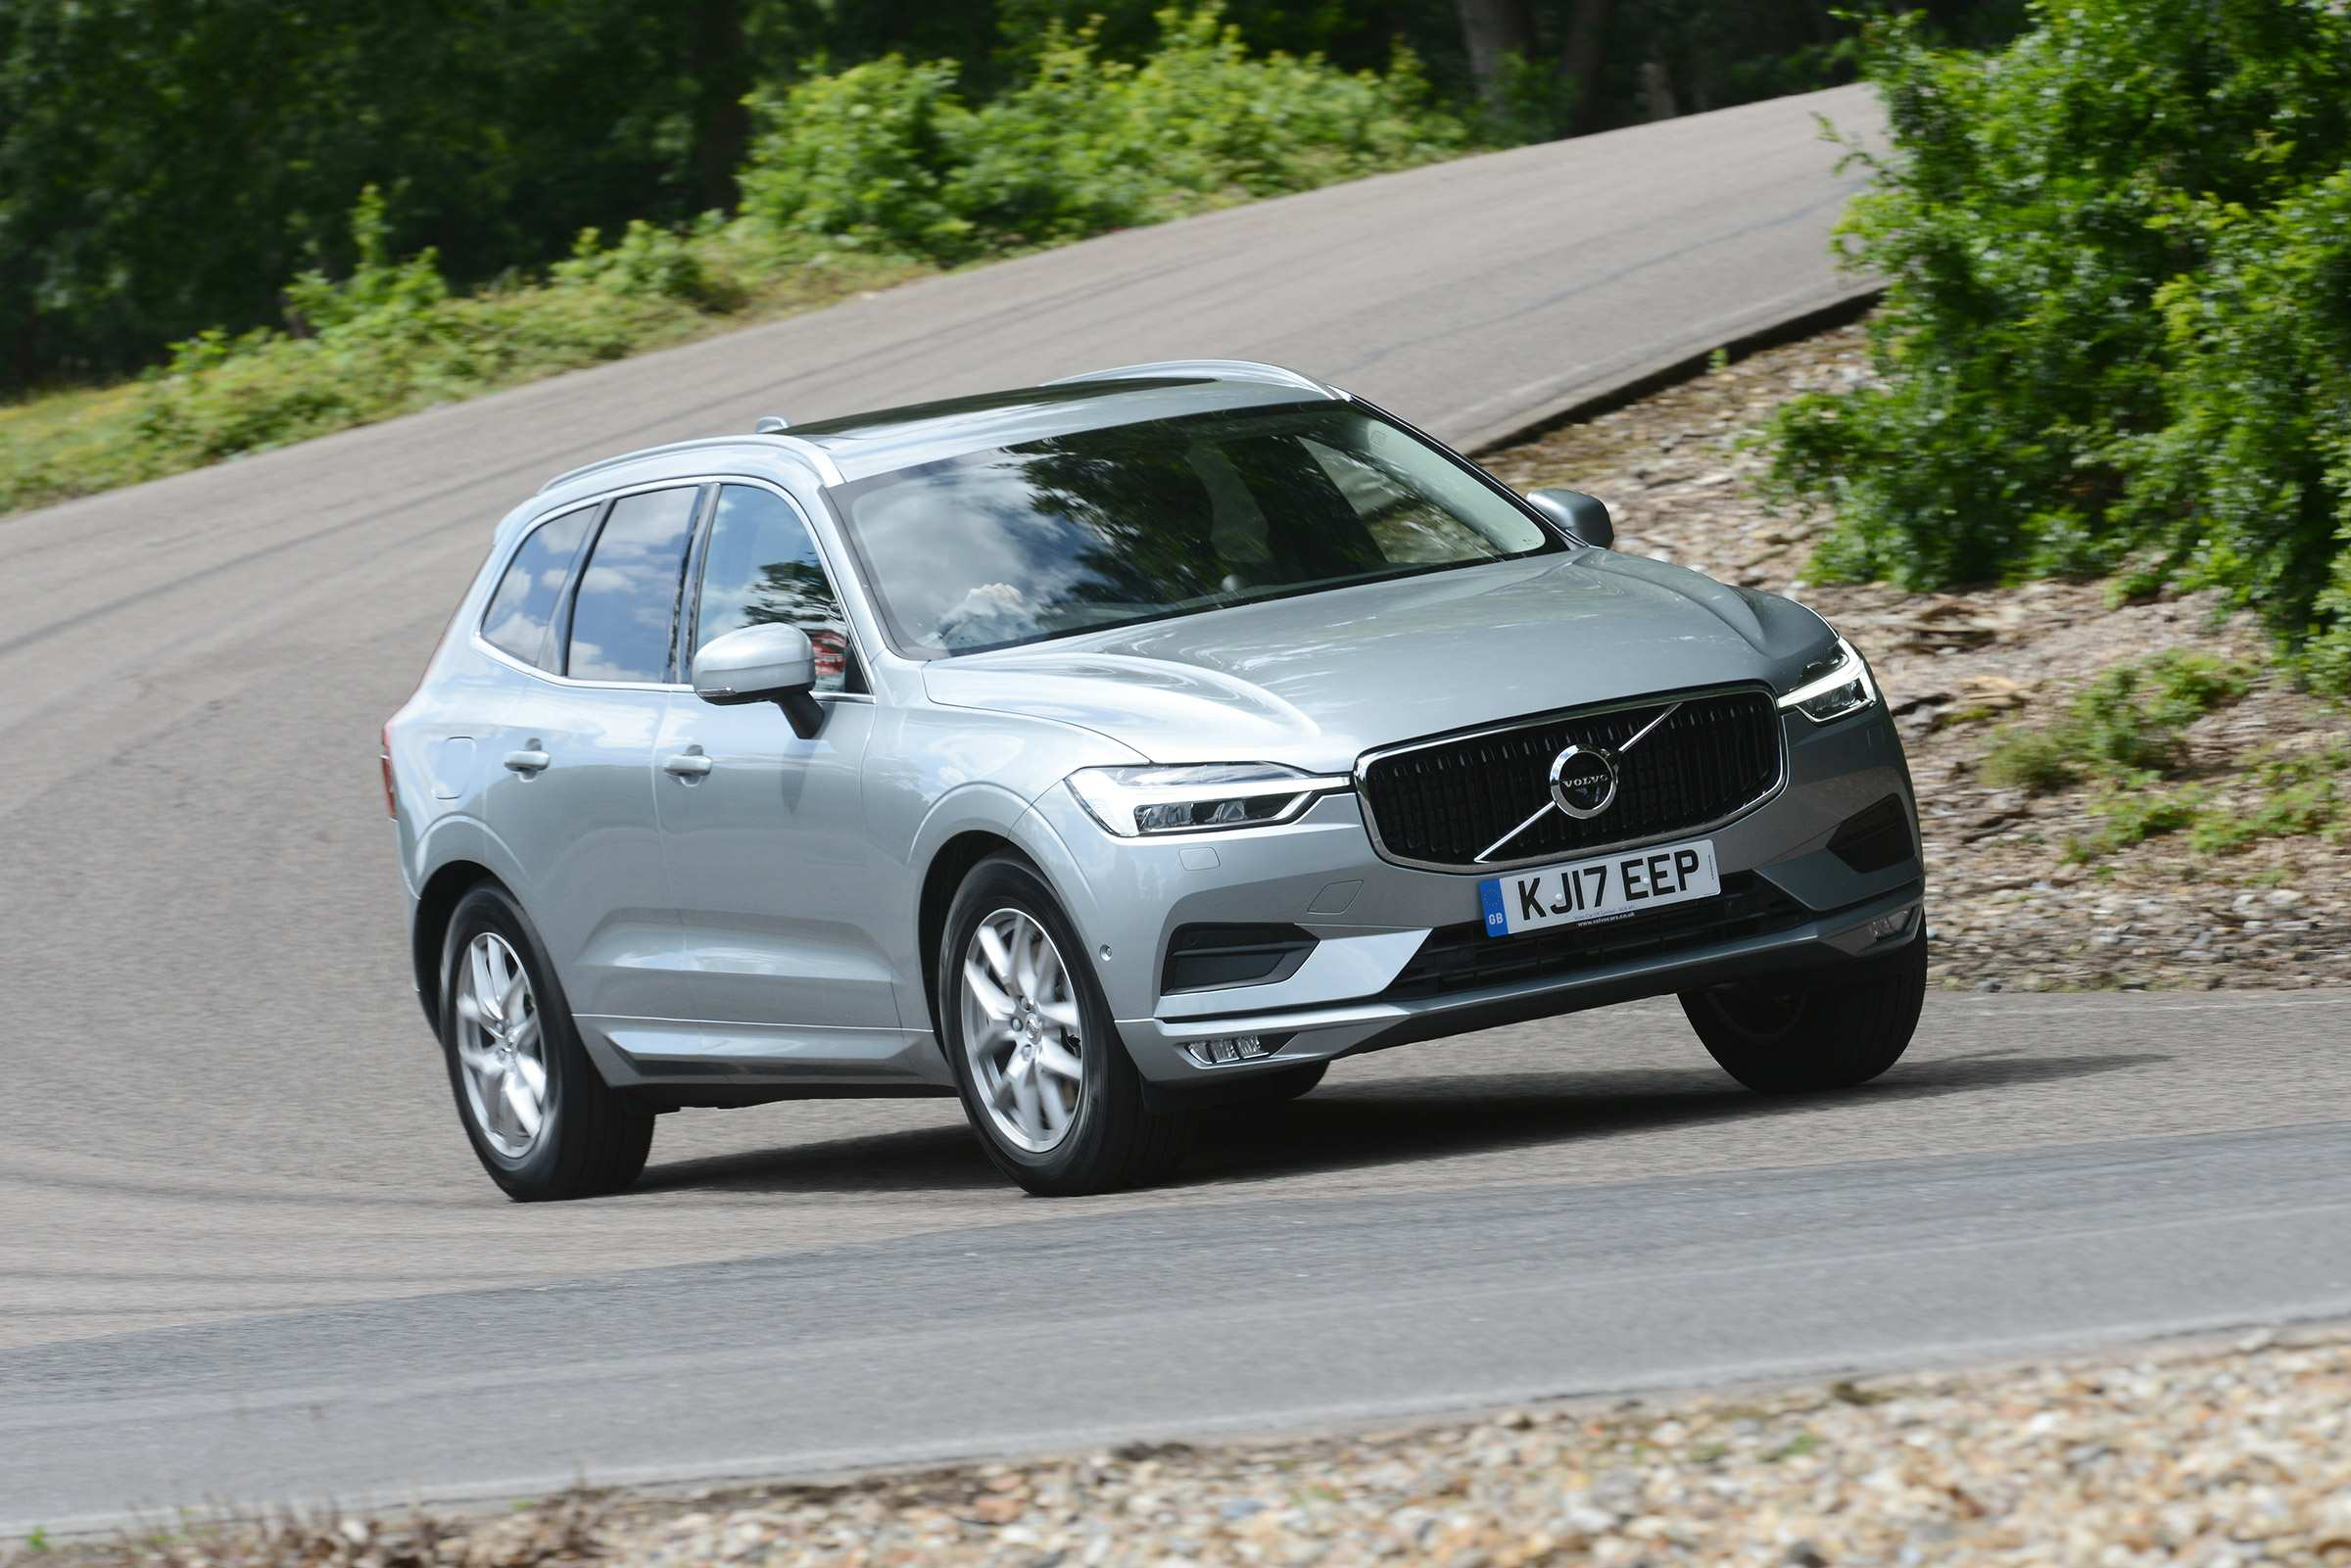 16 All New Volvo Xc60 2020 Uk Release Date And Concept